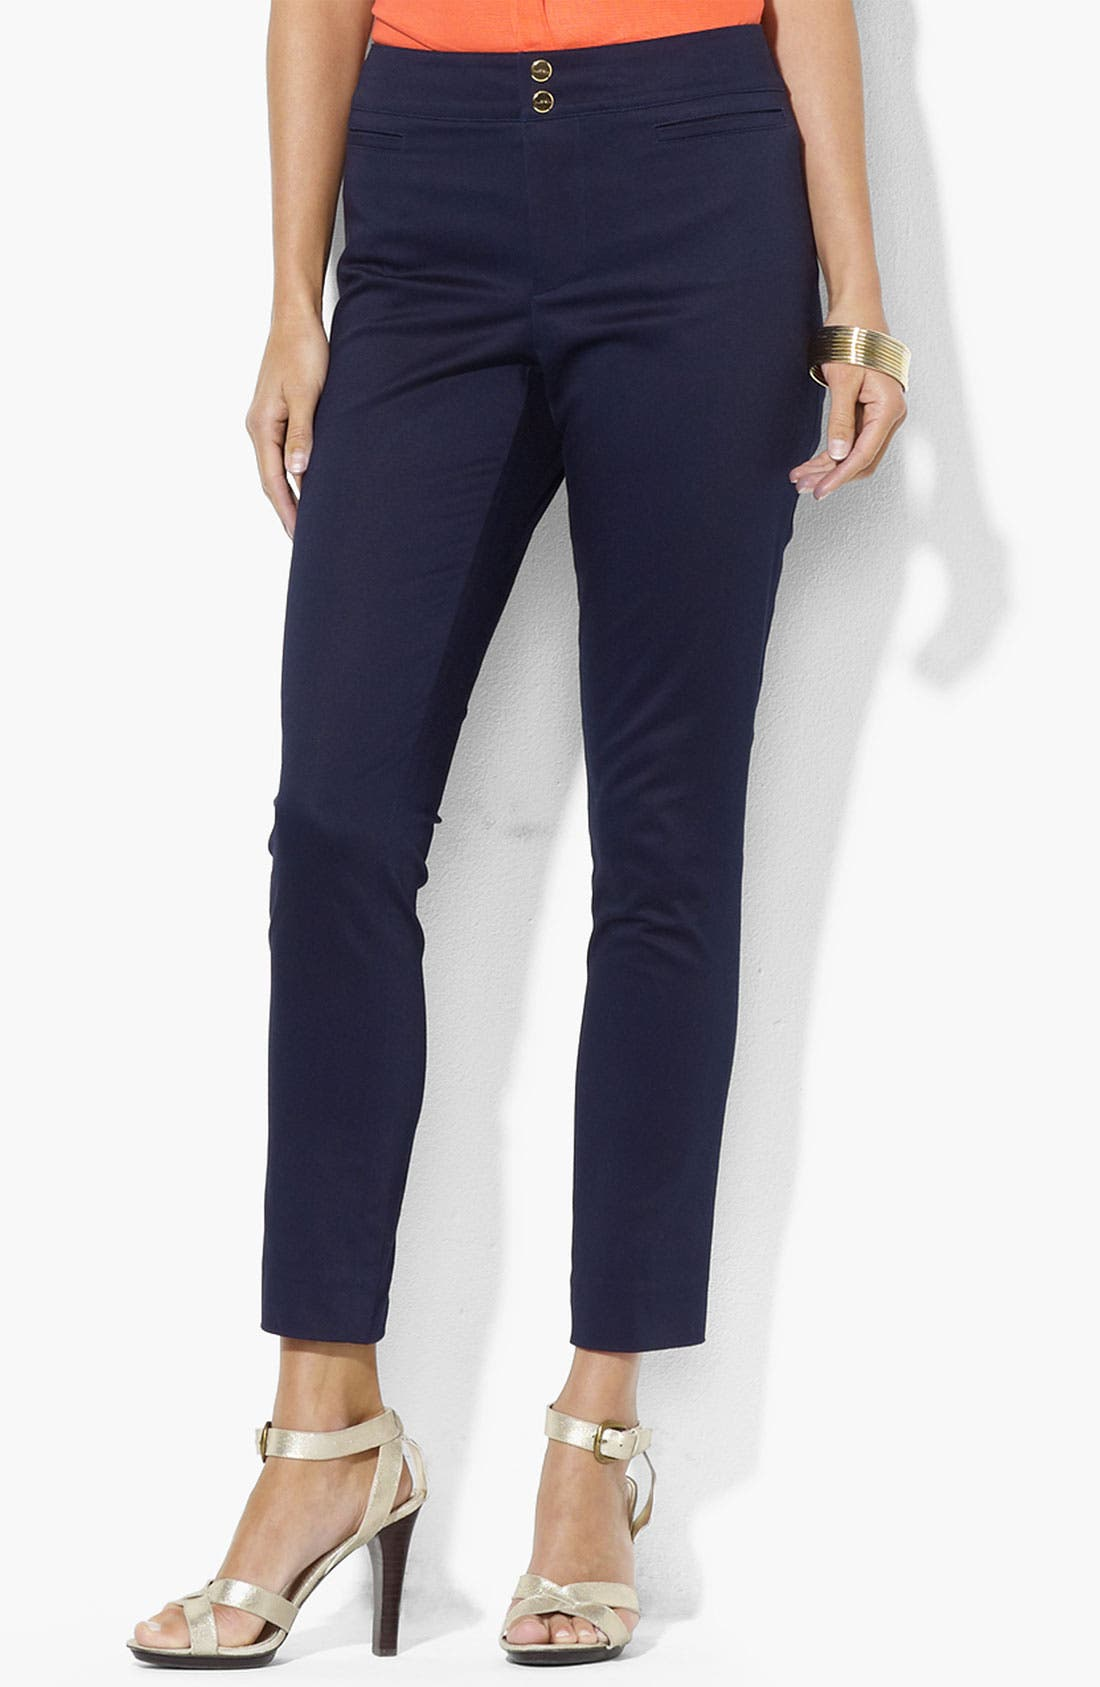 Main Image - Lauren Ralph Lauren Slim Stretch Cotton Pants (Petite) (Online Exclusive)